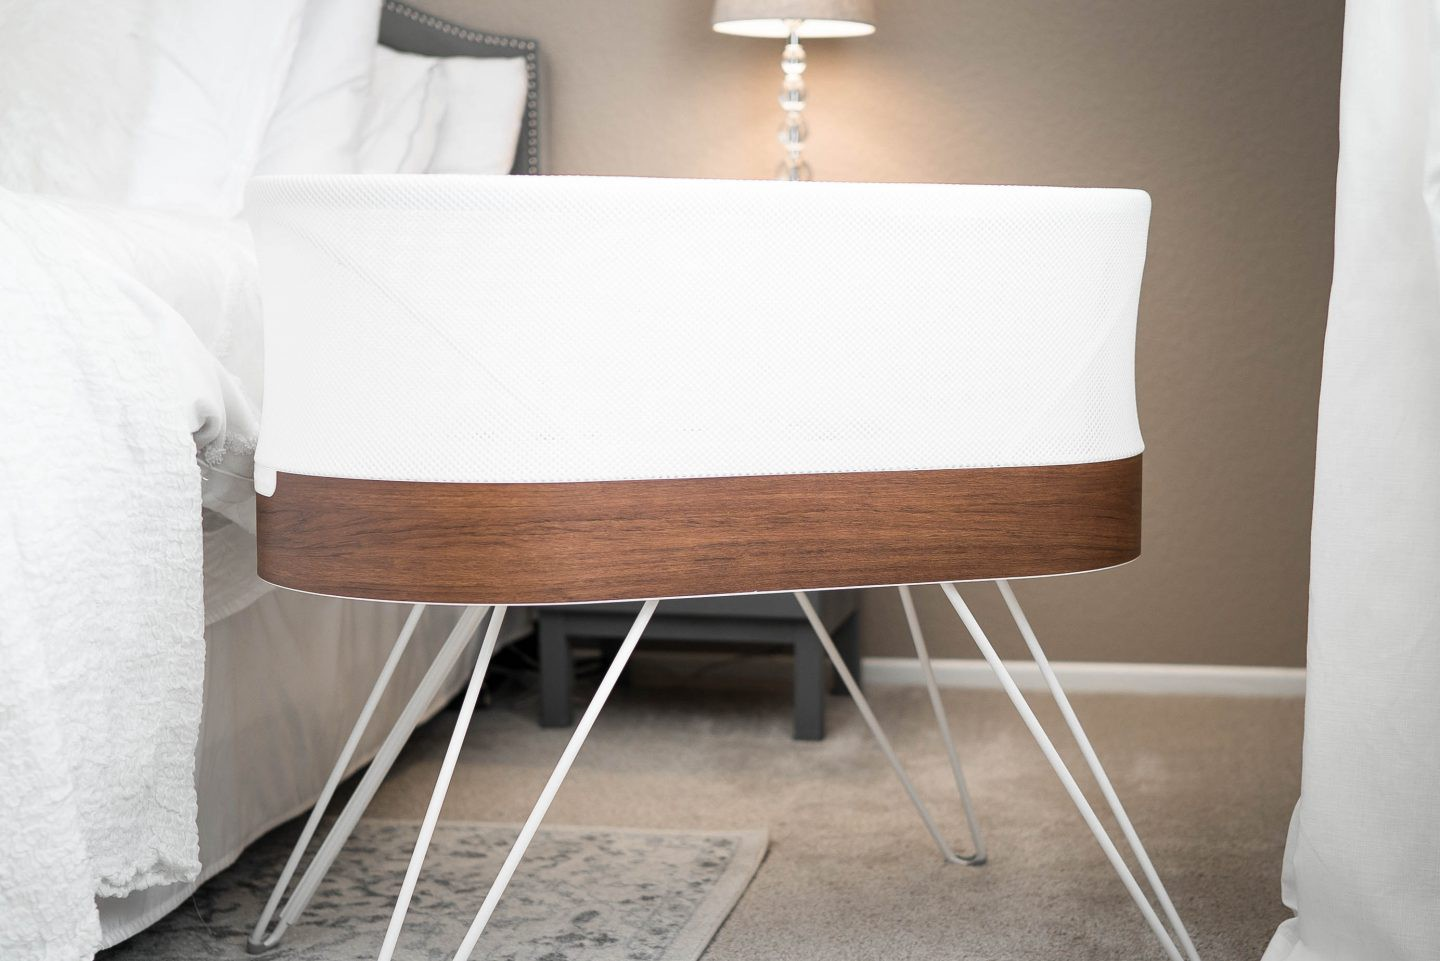 SNOO smart sleeper review featured by popular Orange County lifestyle blogger, Dress Me Blonde